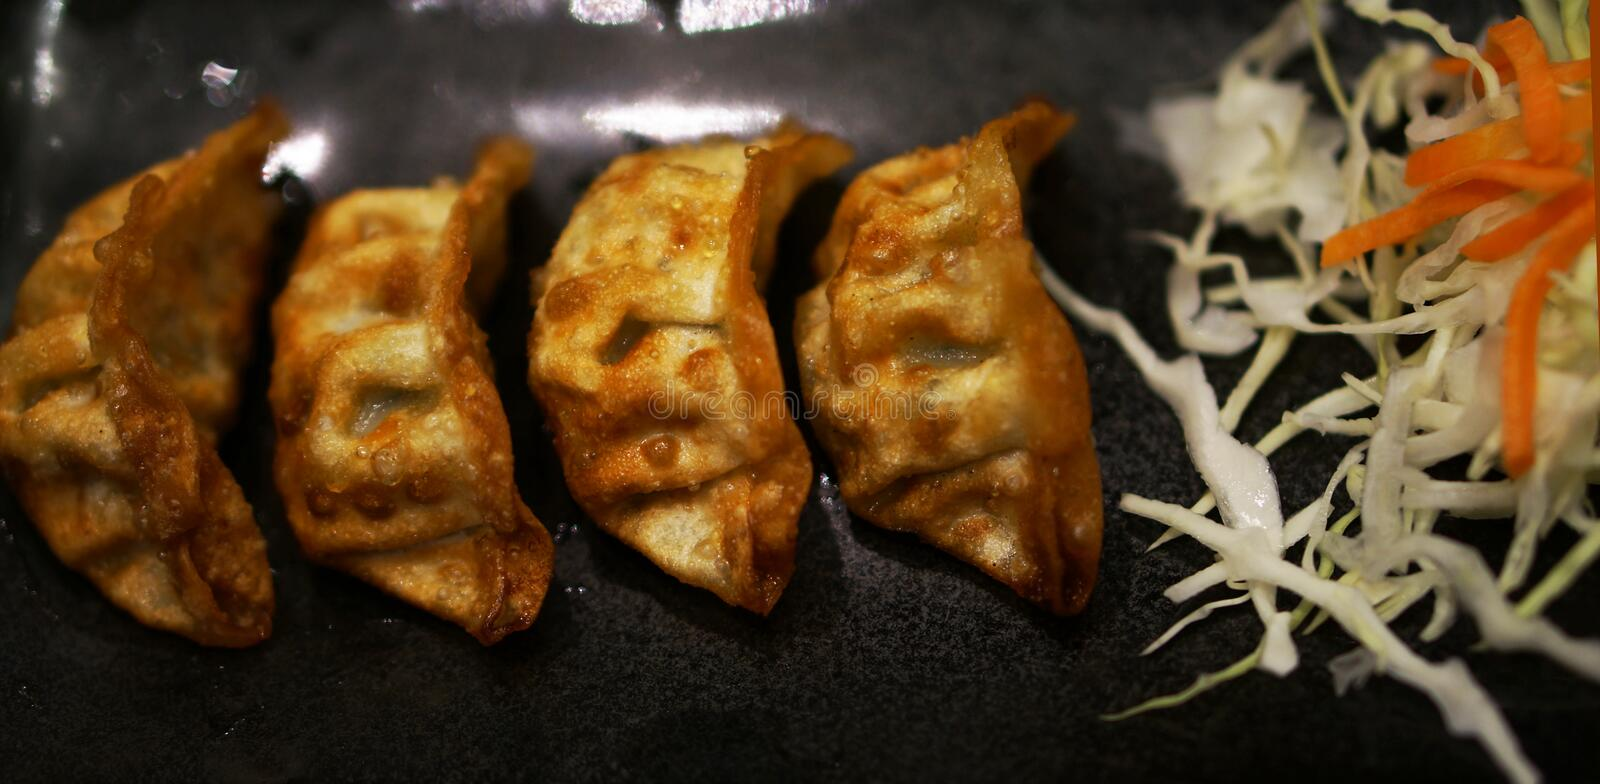 Pan fried vegetarian dumpling. Fried dumplings were beautifully arranged on the plate and very appetizing royalty free stock images